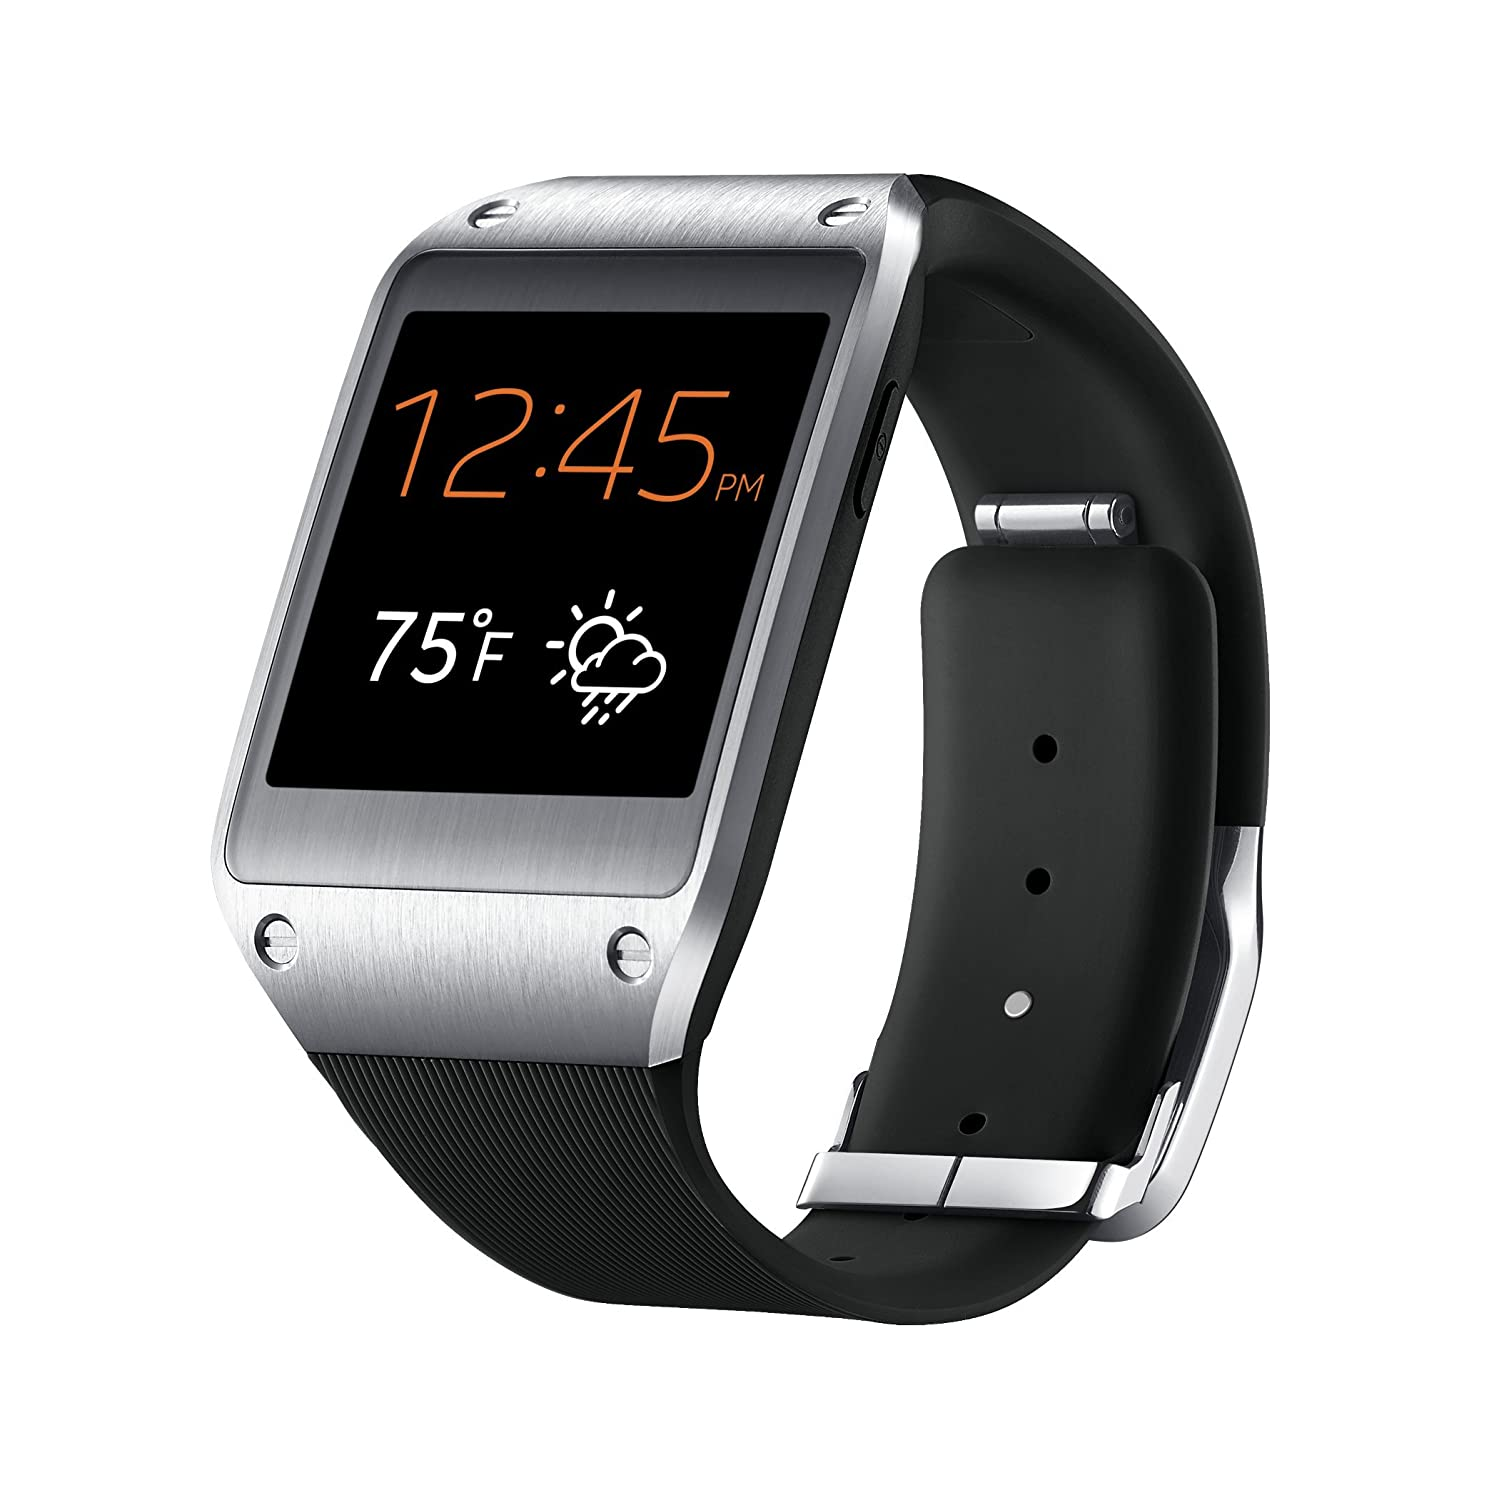 samsung galaxy gear smart watch price in pakistan samsung in pakistan at symbios pk On watches gear